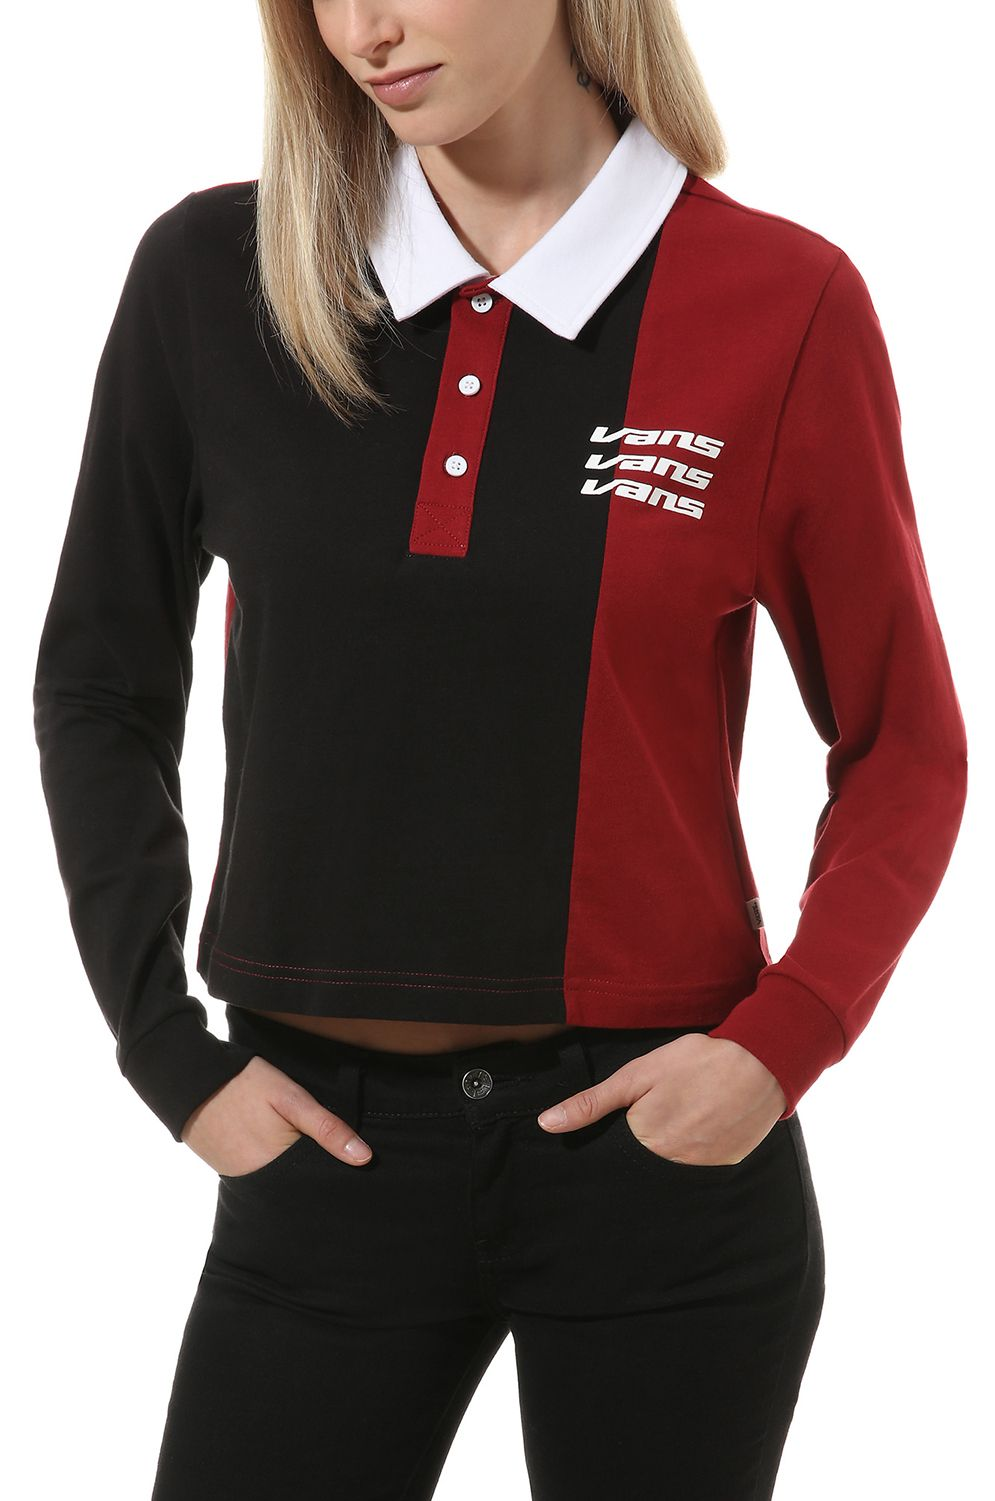 Vans Polo    SUPERSPEEDEE LS Black/Biking Red